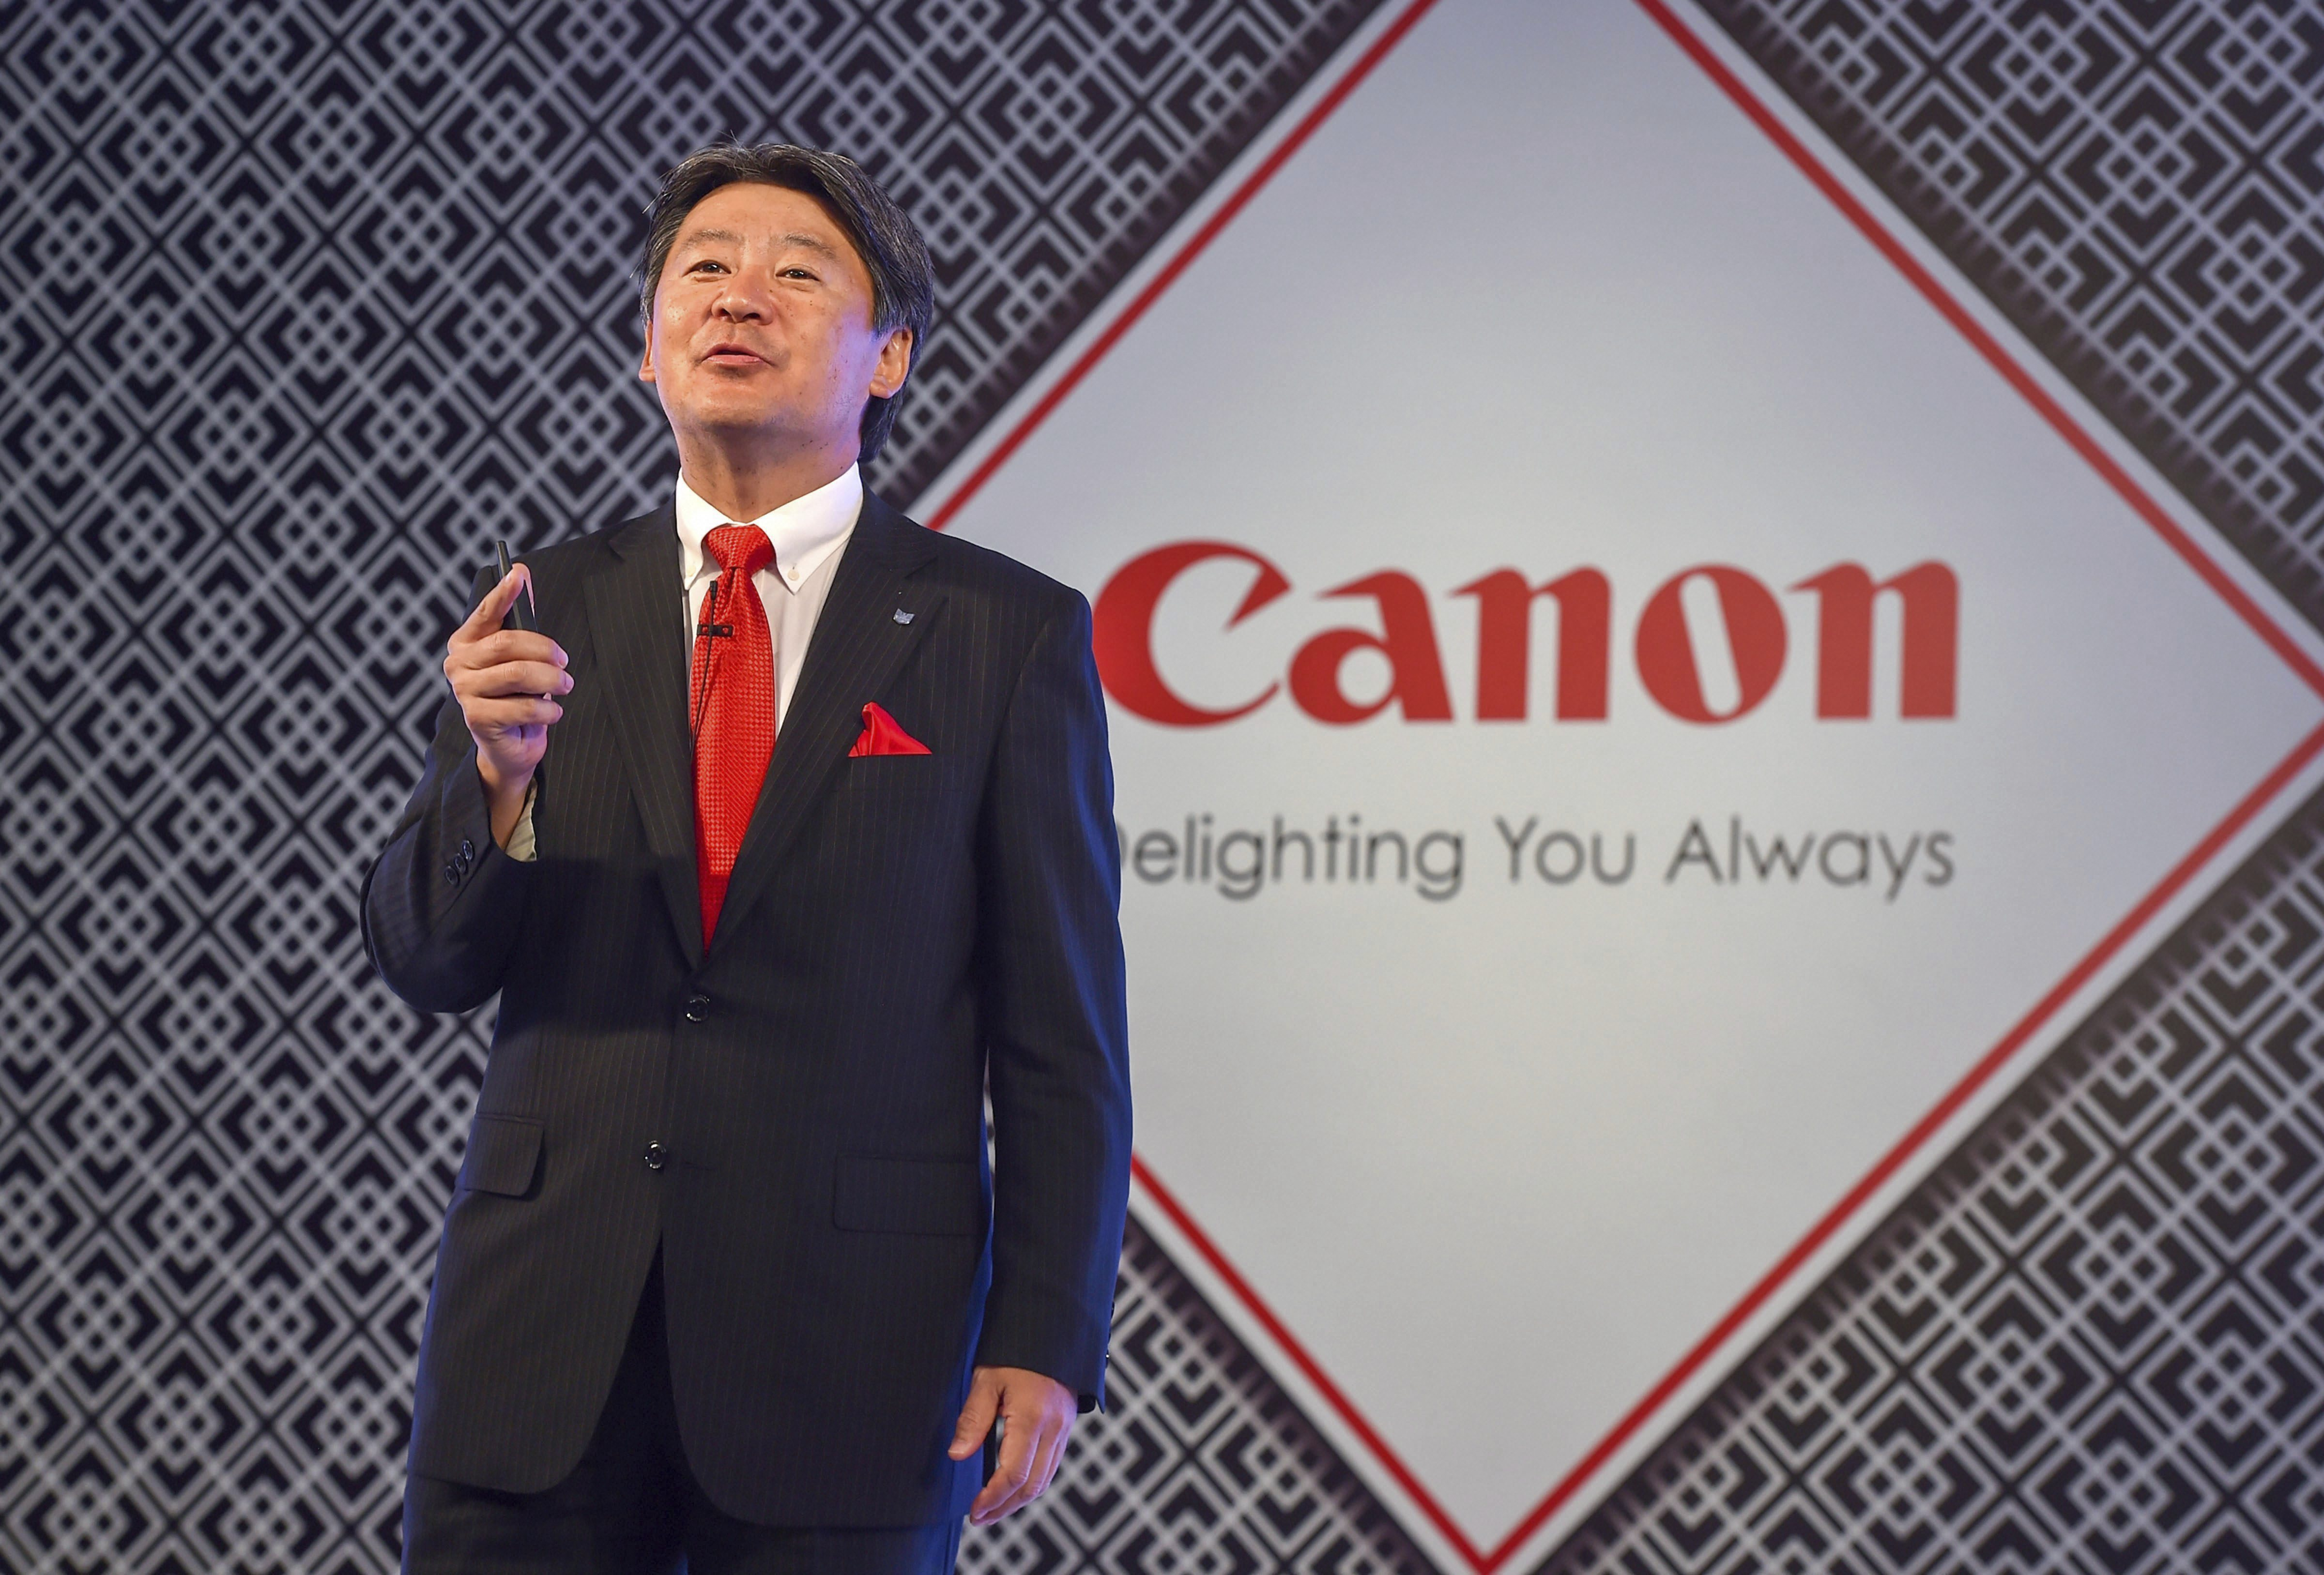 Vice President of Head of Imaging Communication Proucts Group (Canon China, Canon Asia Marketing Group) Toshiyuki (Tiger) Ishii during the launch of Canon's first full frame mirrorless digital camera and a new line up of lenses, at a press conference in New Delhi - PTI